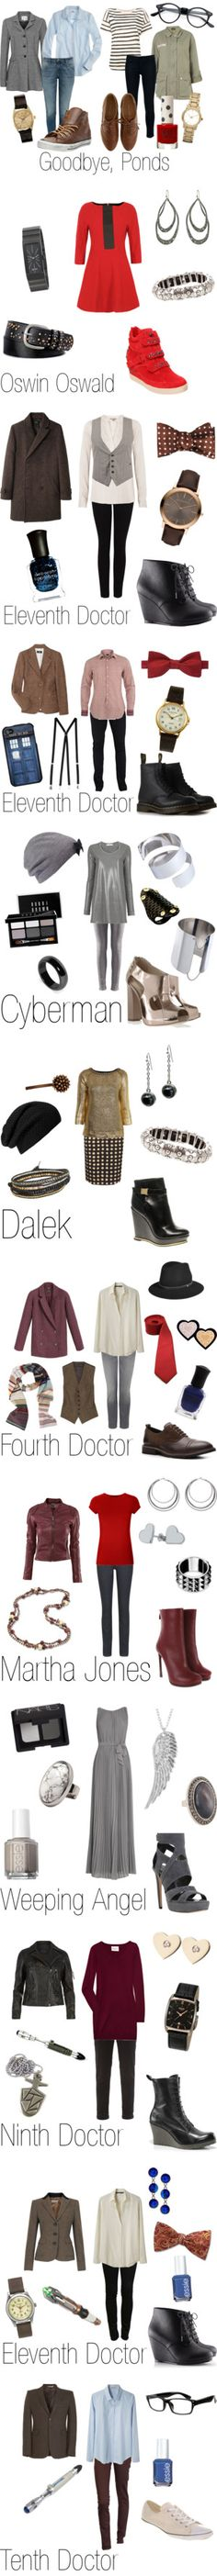 """Doctor Who & Torchwood"" by ja-vy ❤ liked on Polyvore Sorry this isn't disney but I still wanted to repin it"